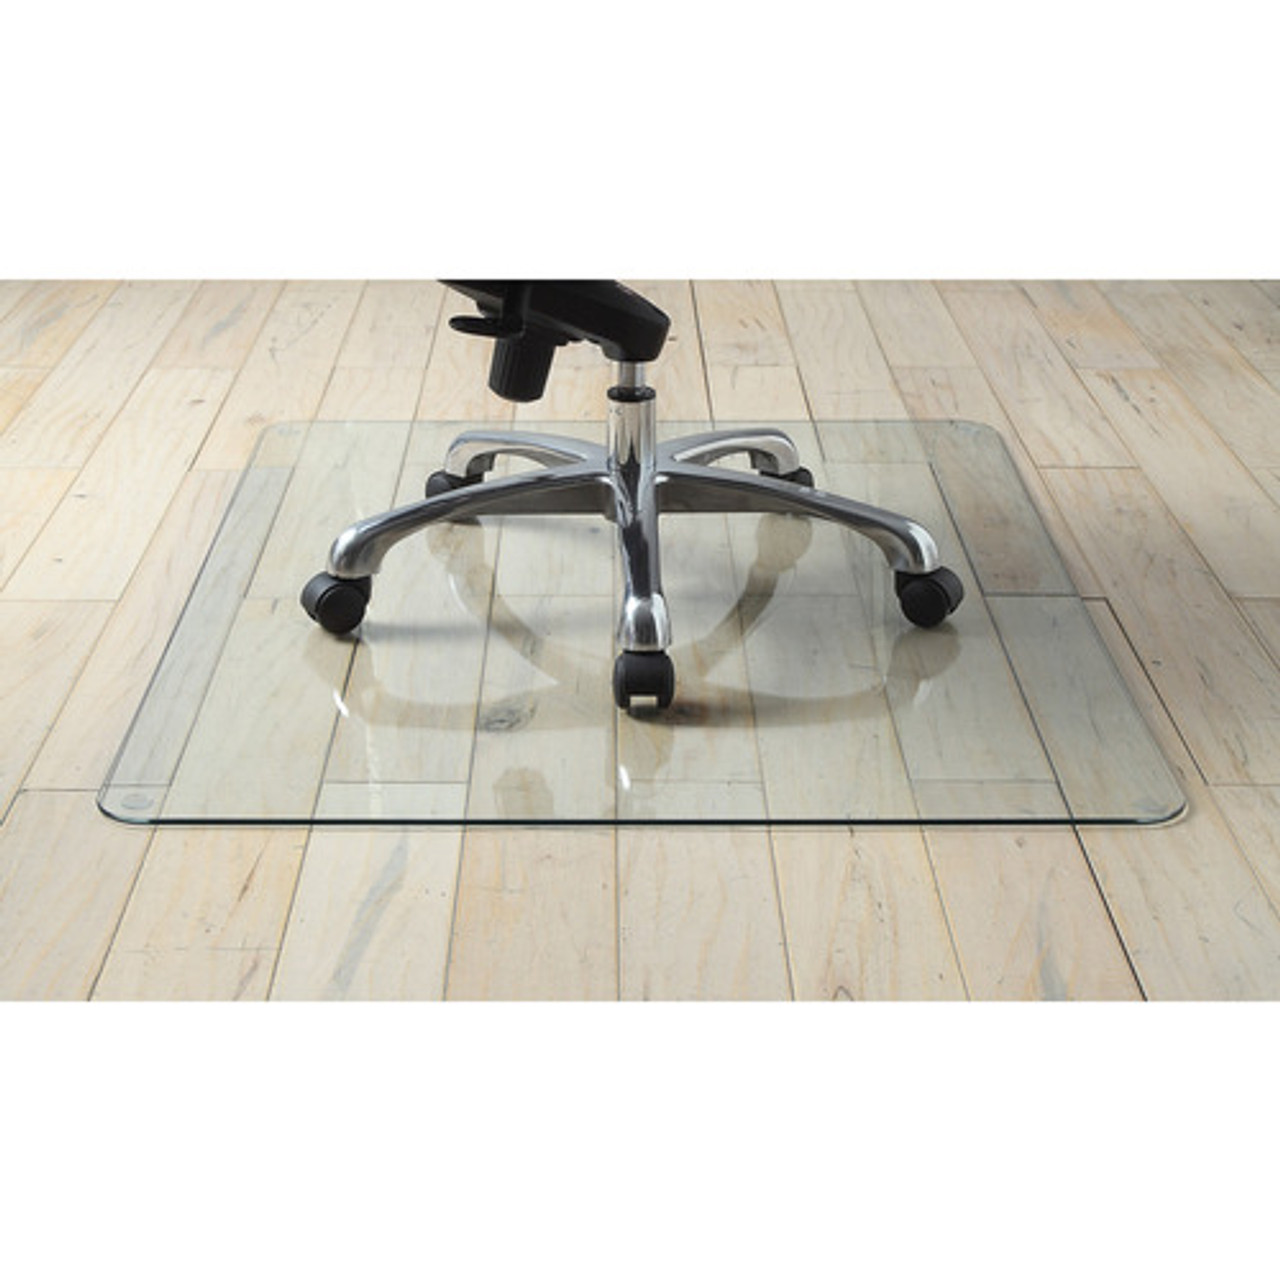 "Lorell Tempered Glass Chairmat, Floor - 50"" Length x 44"" Width x 0.25"" Thickness - Rectangle - Tempered Glass - Clear"